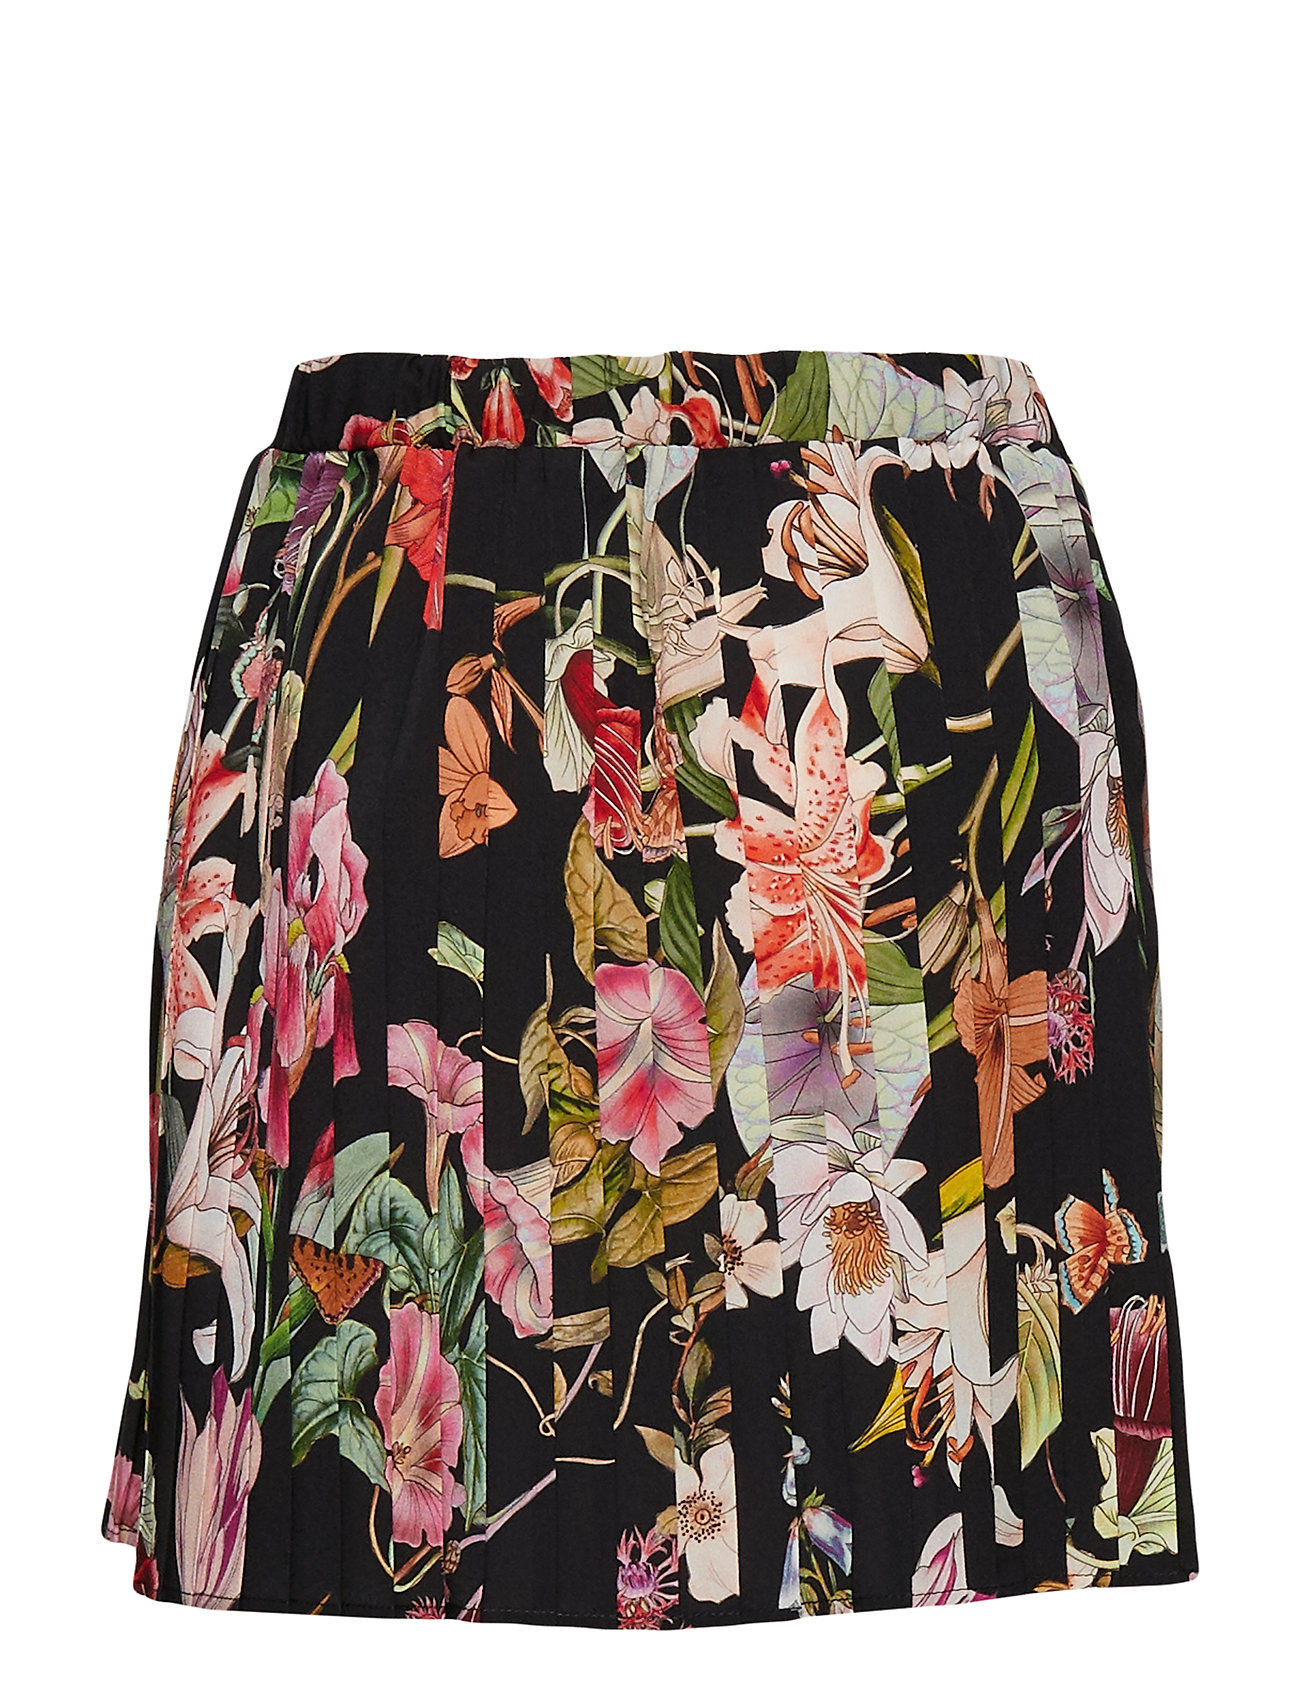 Skirt No. 206 Nederdel Sort CHRISTINA ROHDE